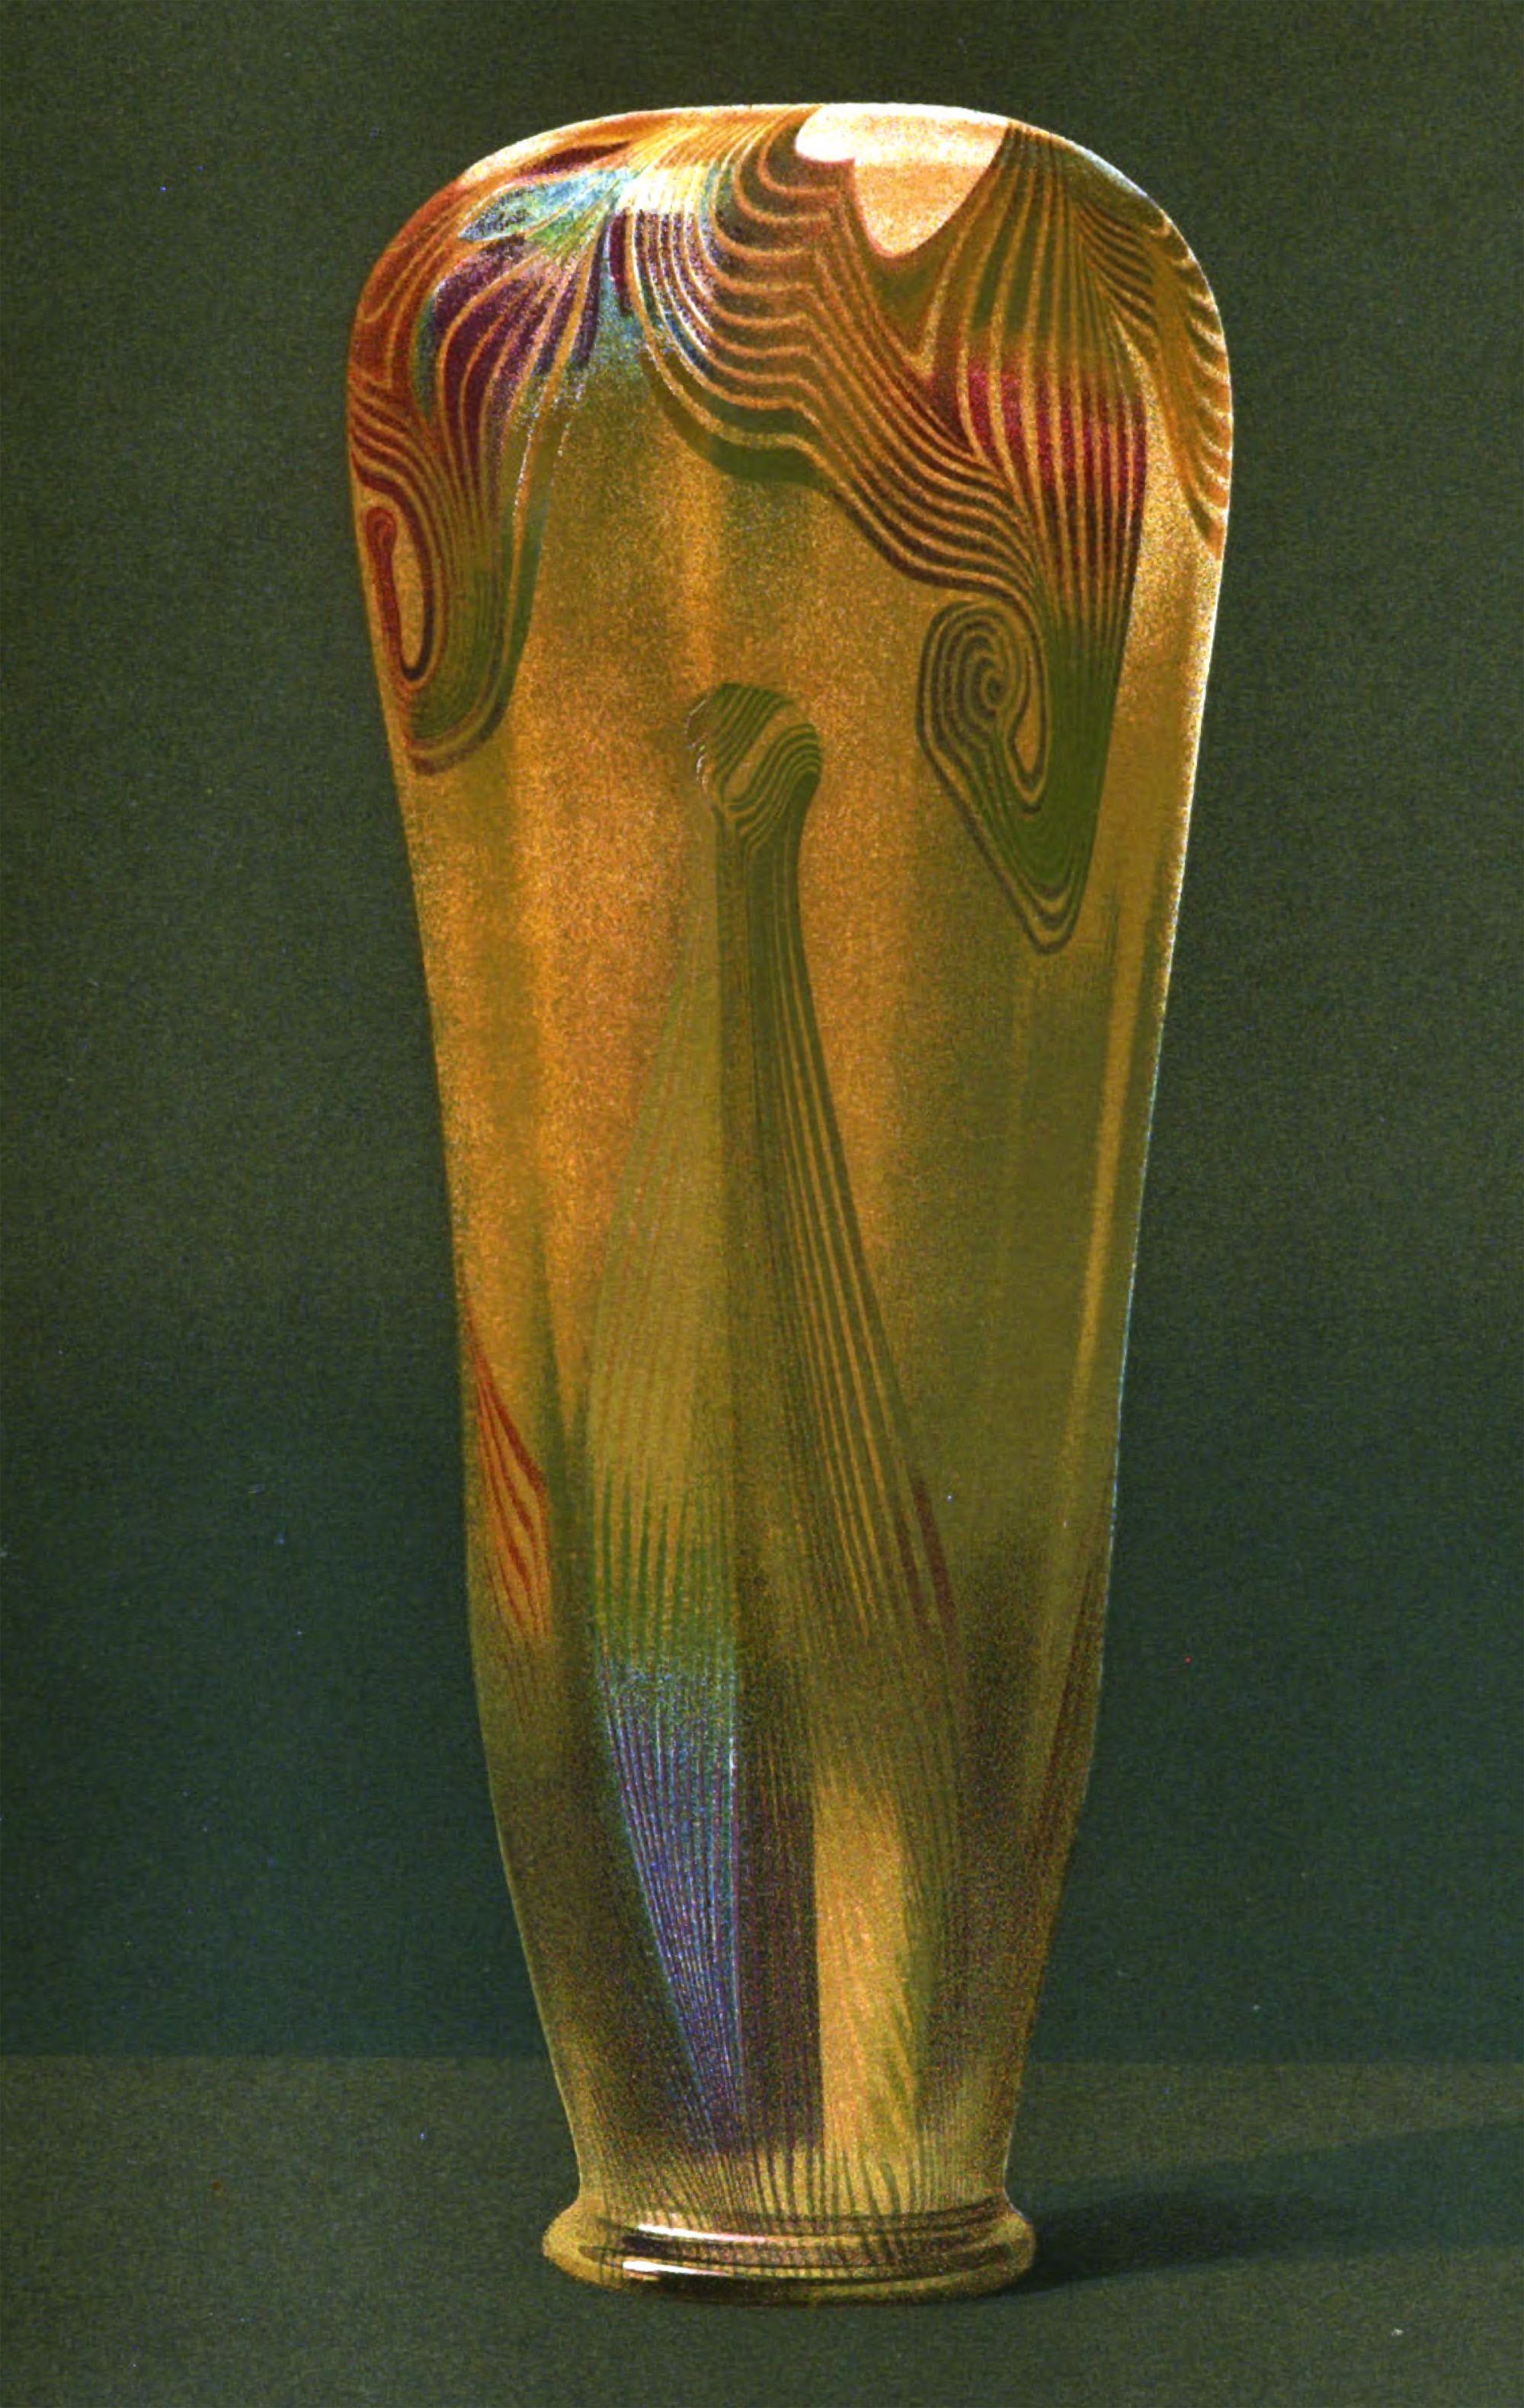 Tiffany vase from art et decoration circa 1903 for Art et decoration